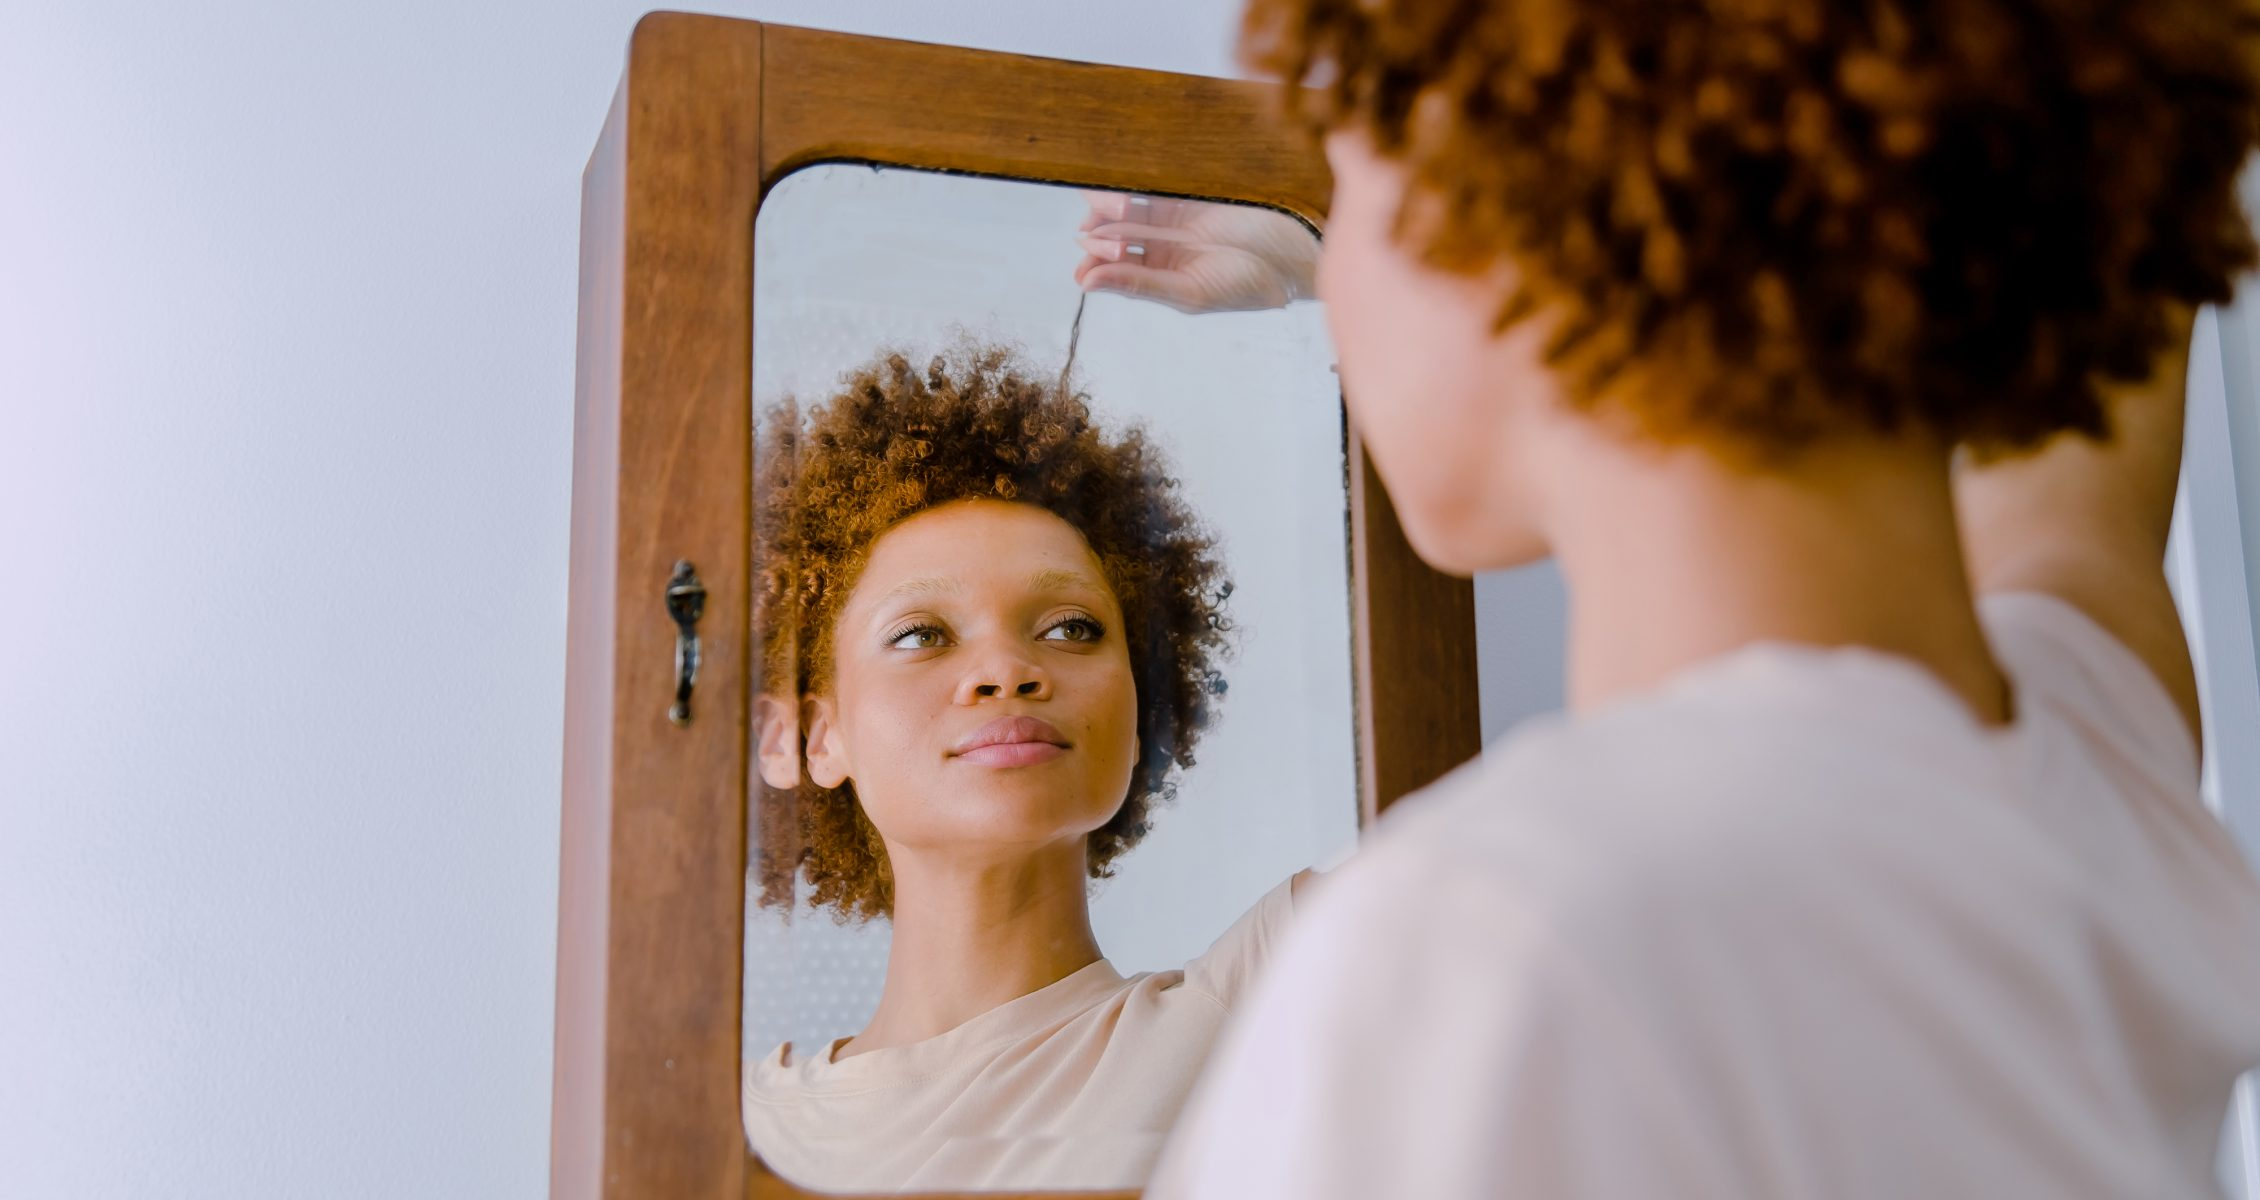 Curly haired woman staring at her reflection in the mirror examining her hair while pulling on one of her strands